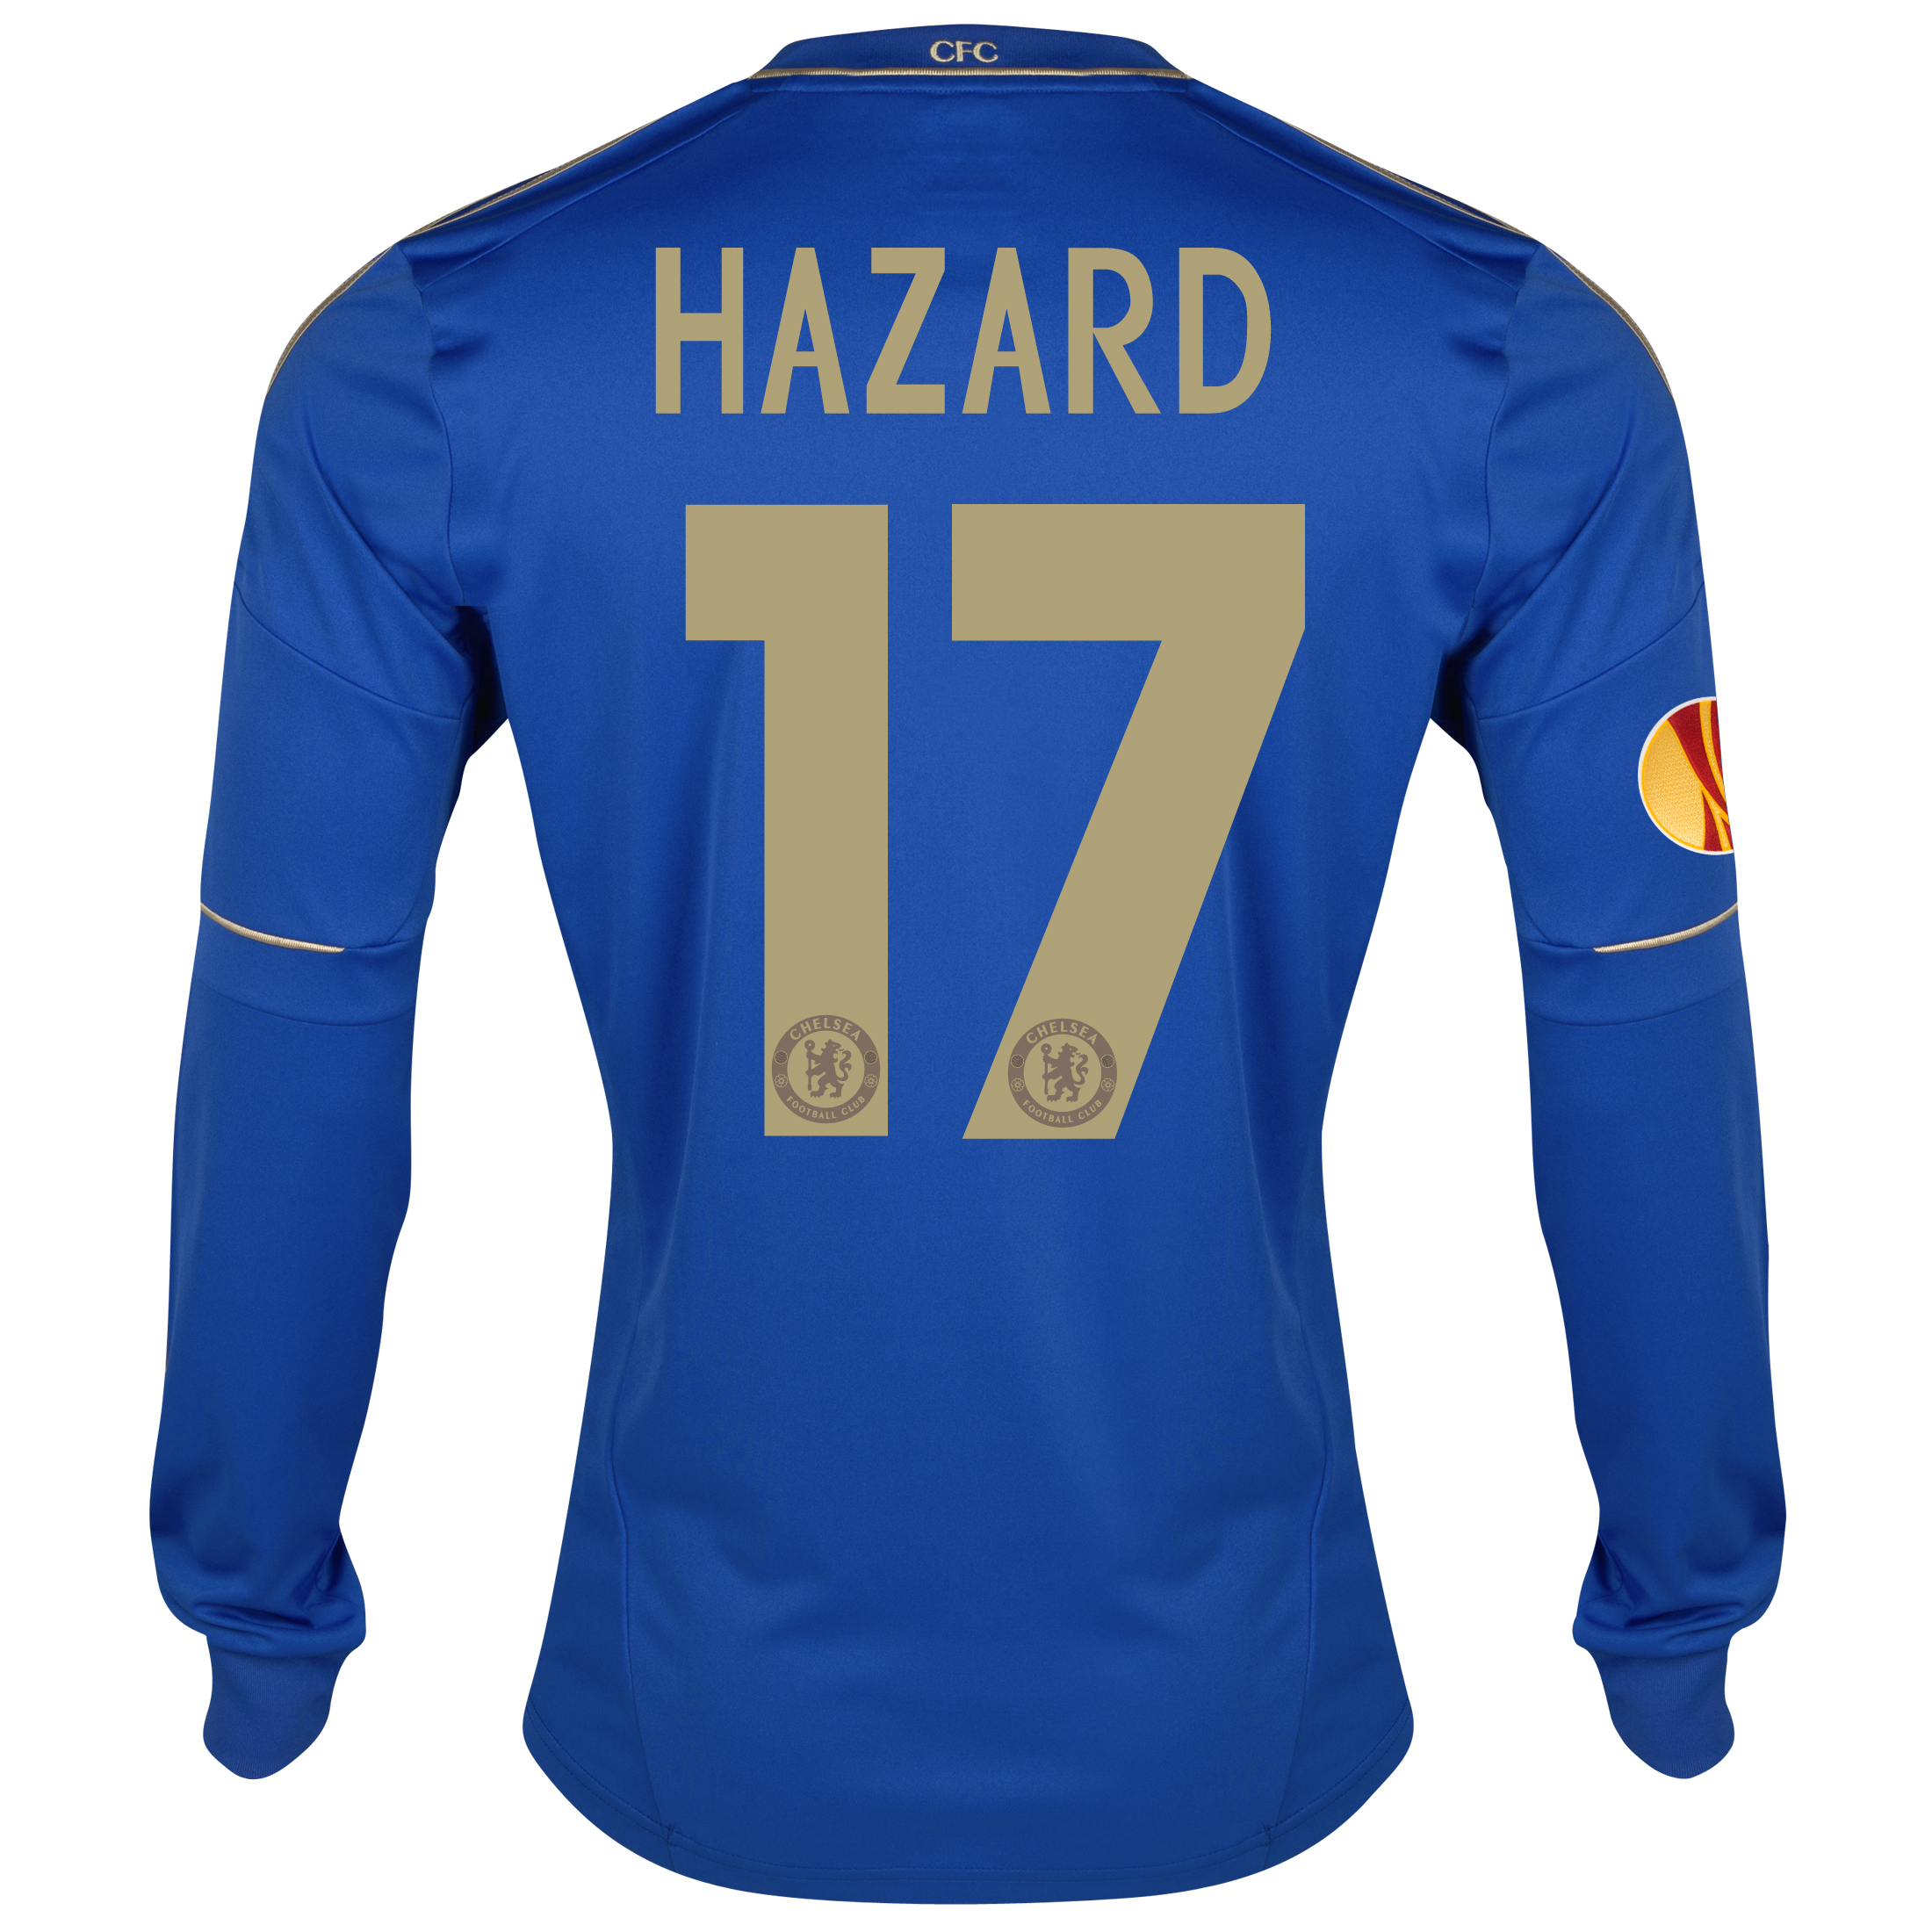 Chelsea UEFA Europa League Home Shirt 2012/13 - Long Sleeved with Hazard 17 printing Including Europa Badge